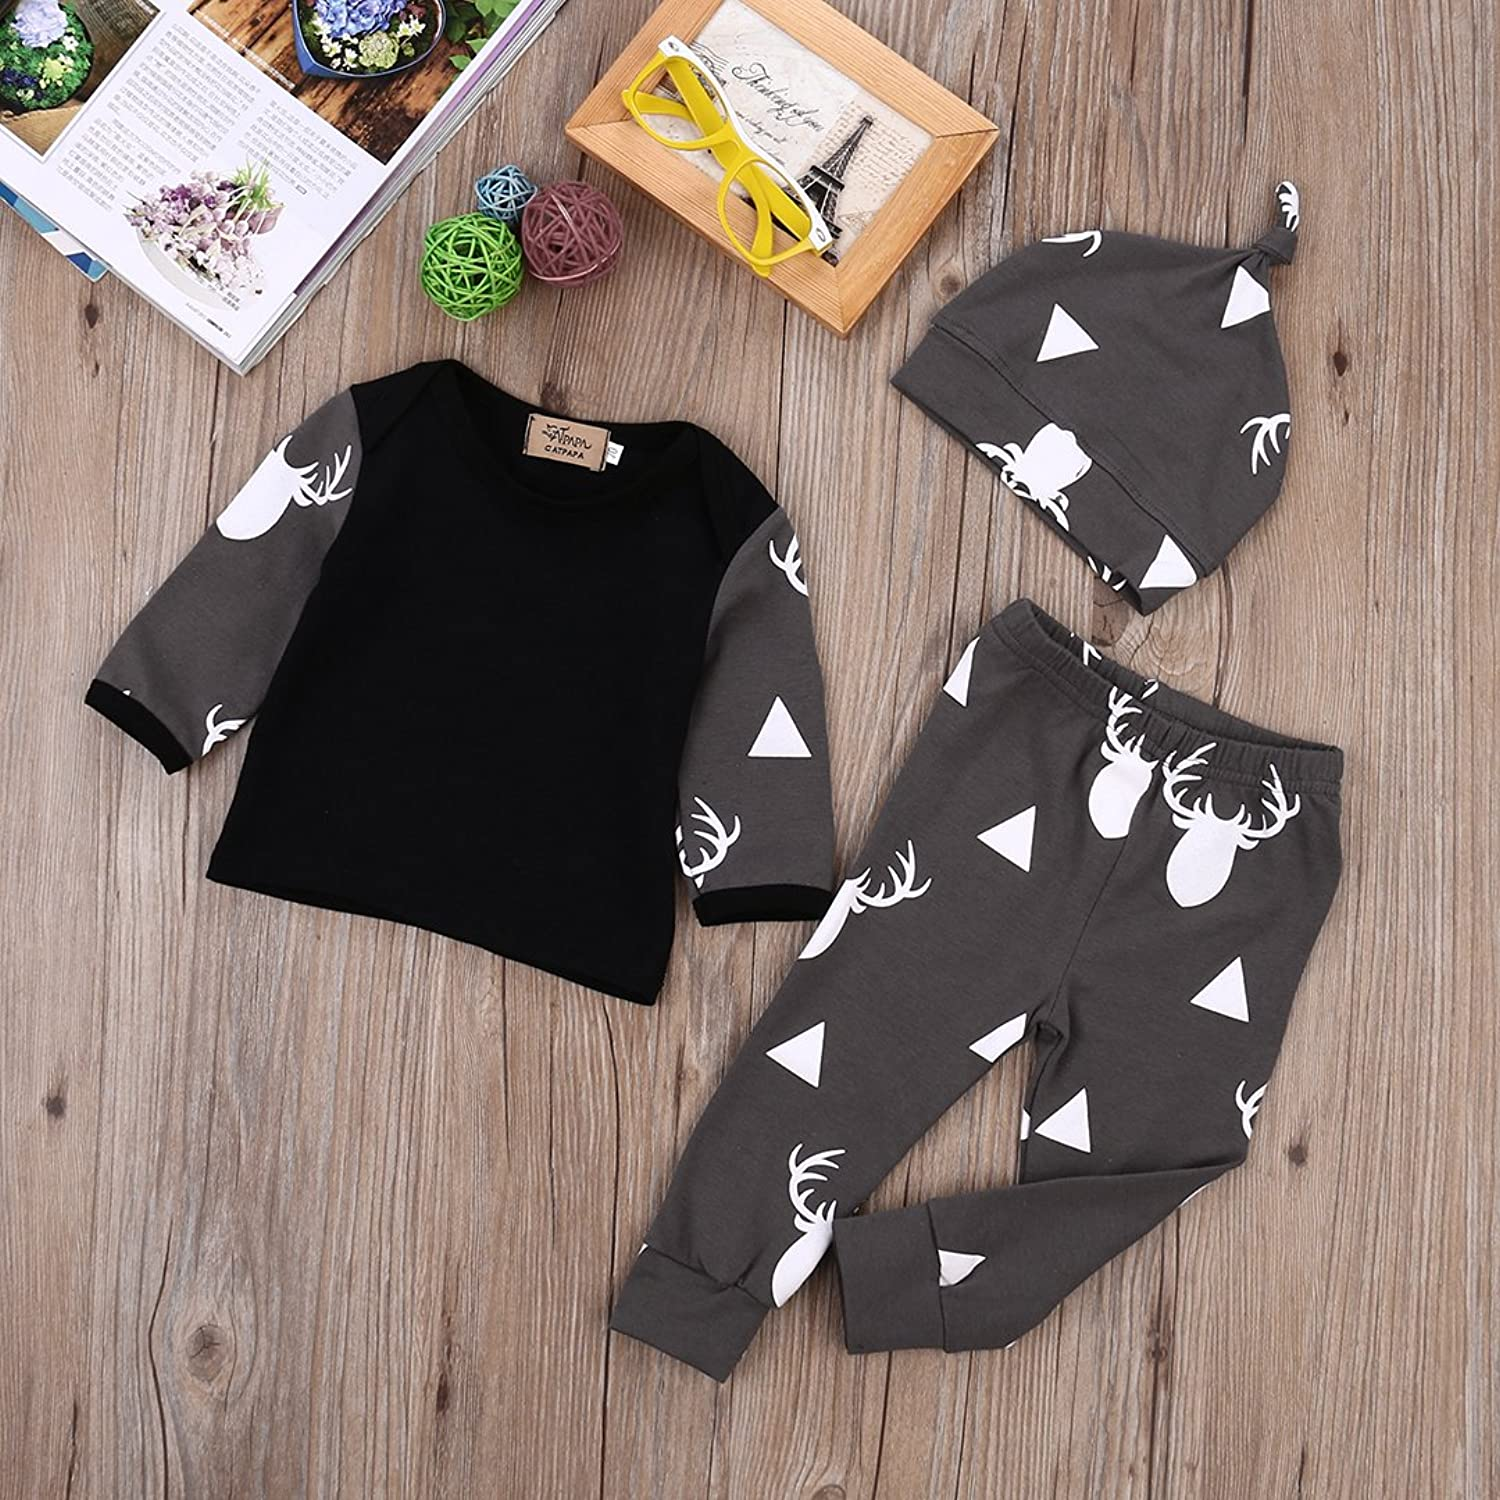 amazoncom newborn baby girl boy clothes deer tops tshirtpants leggings 3pcs outfits set clothing